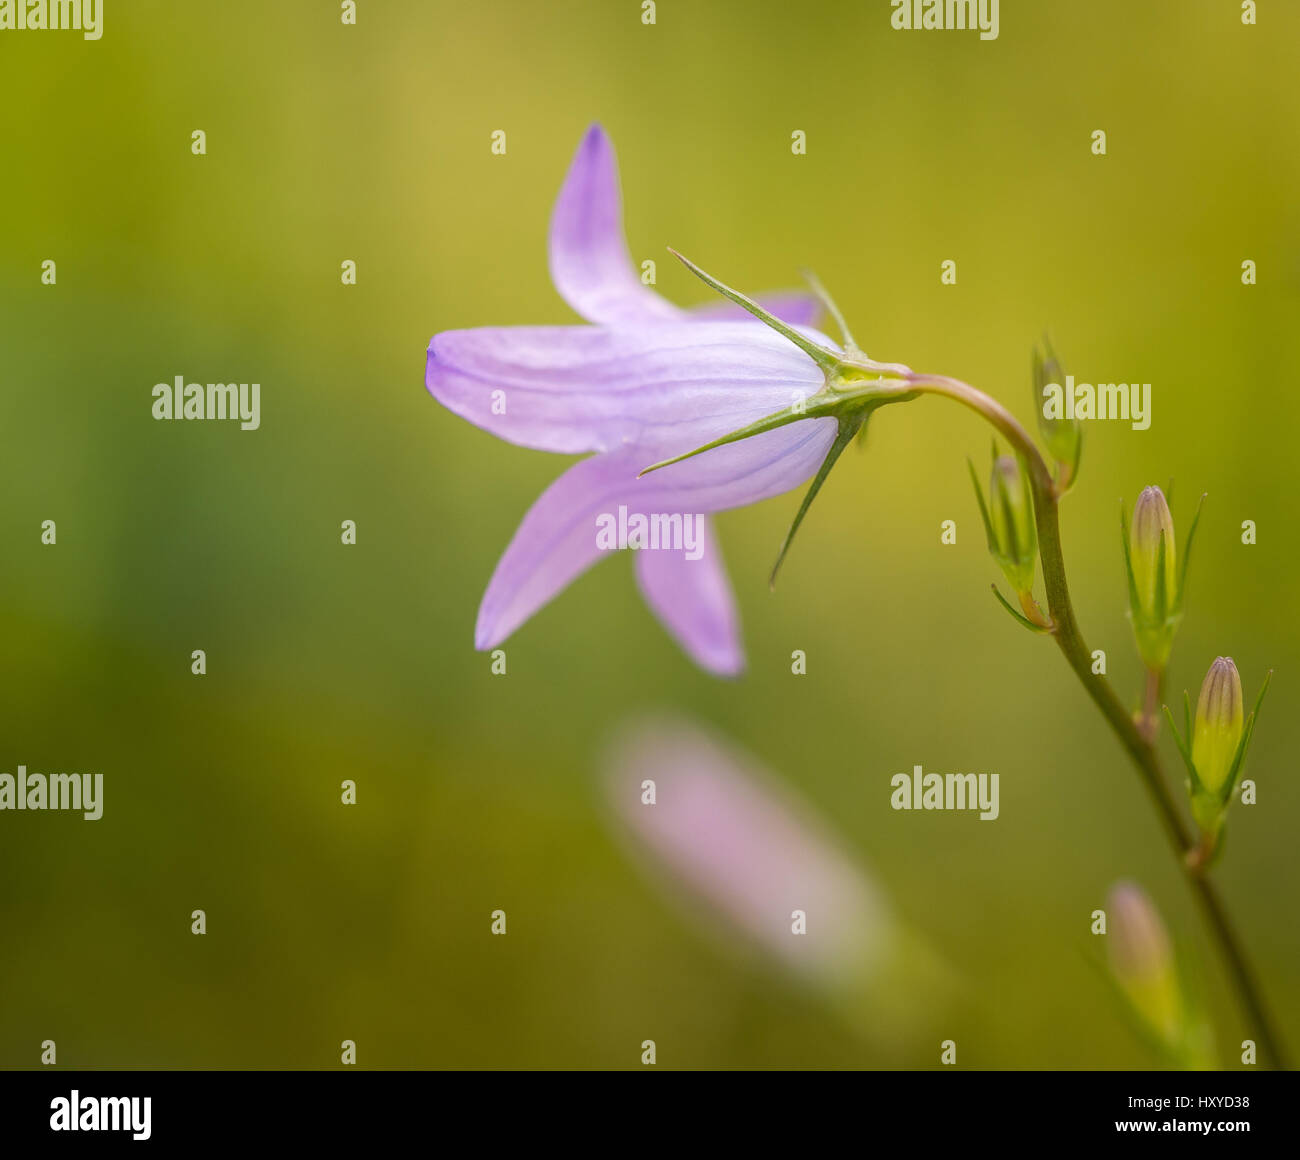 meadow bellflower, beauty in purple with a blurry background - Stock Image